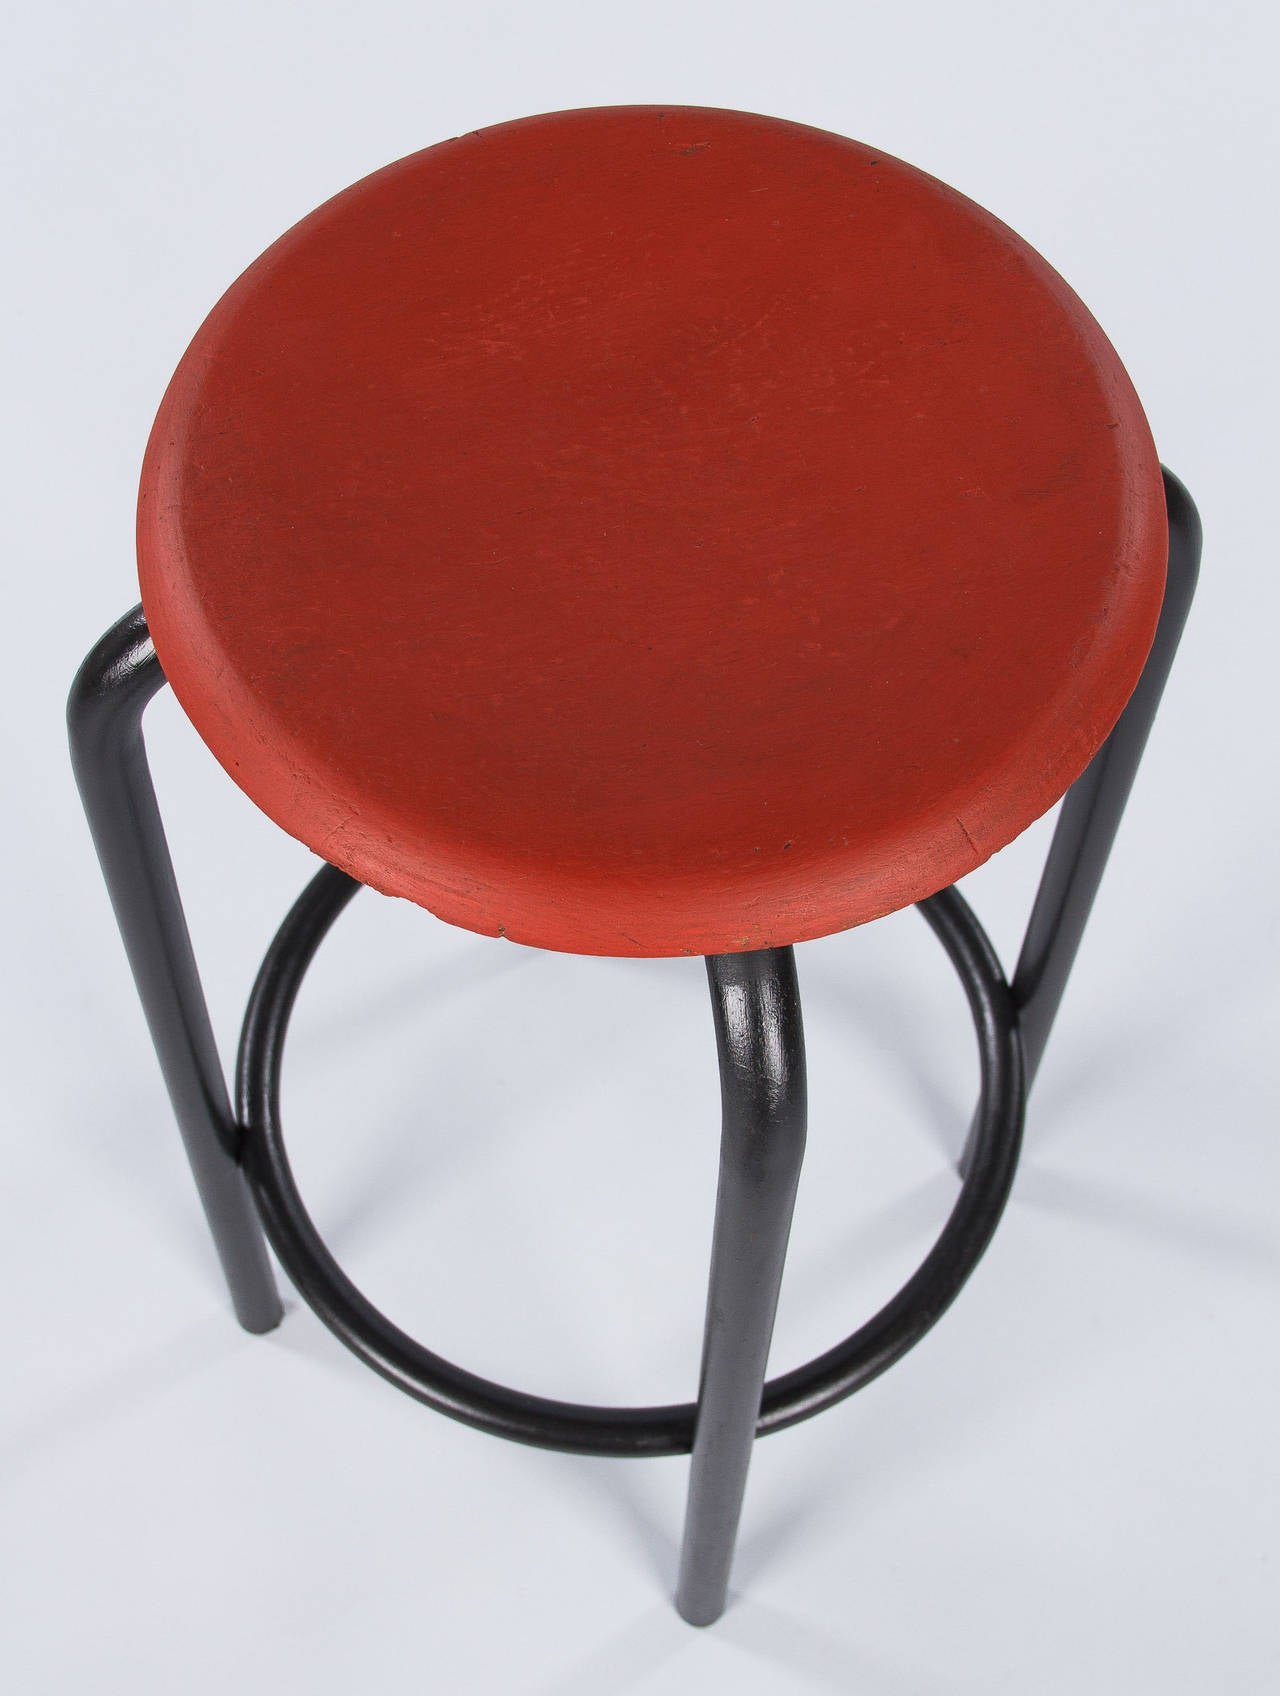 French Vintage Industrial Red and Black Stool, 1950s In Good Condition In Austin, TX